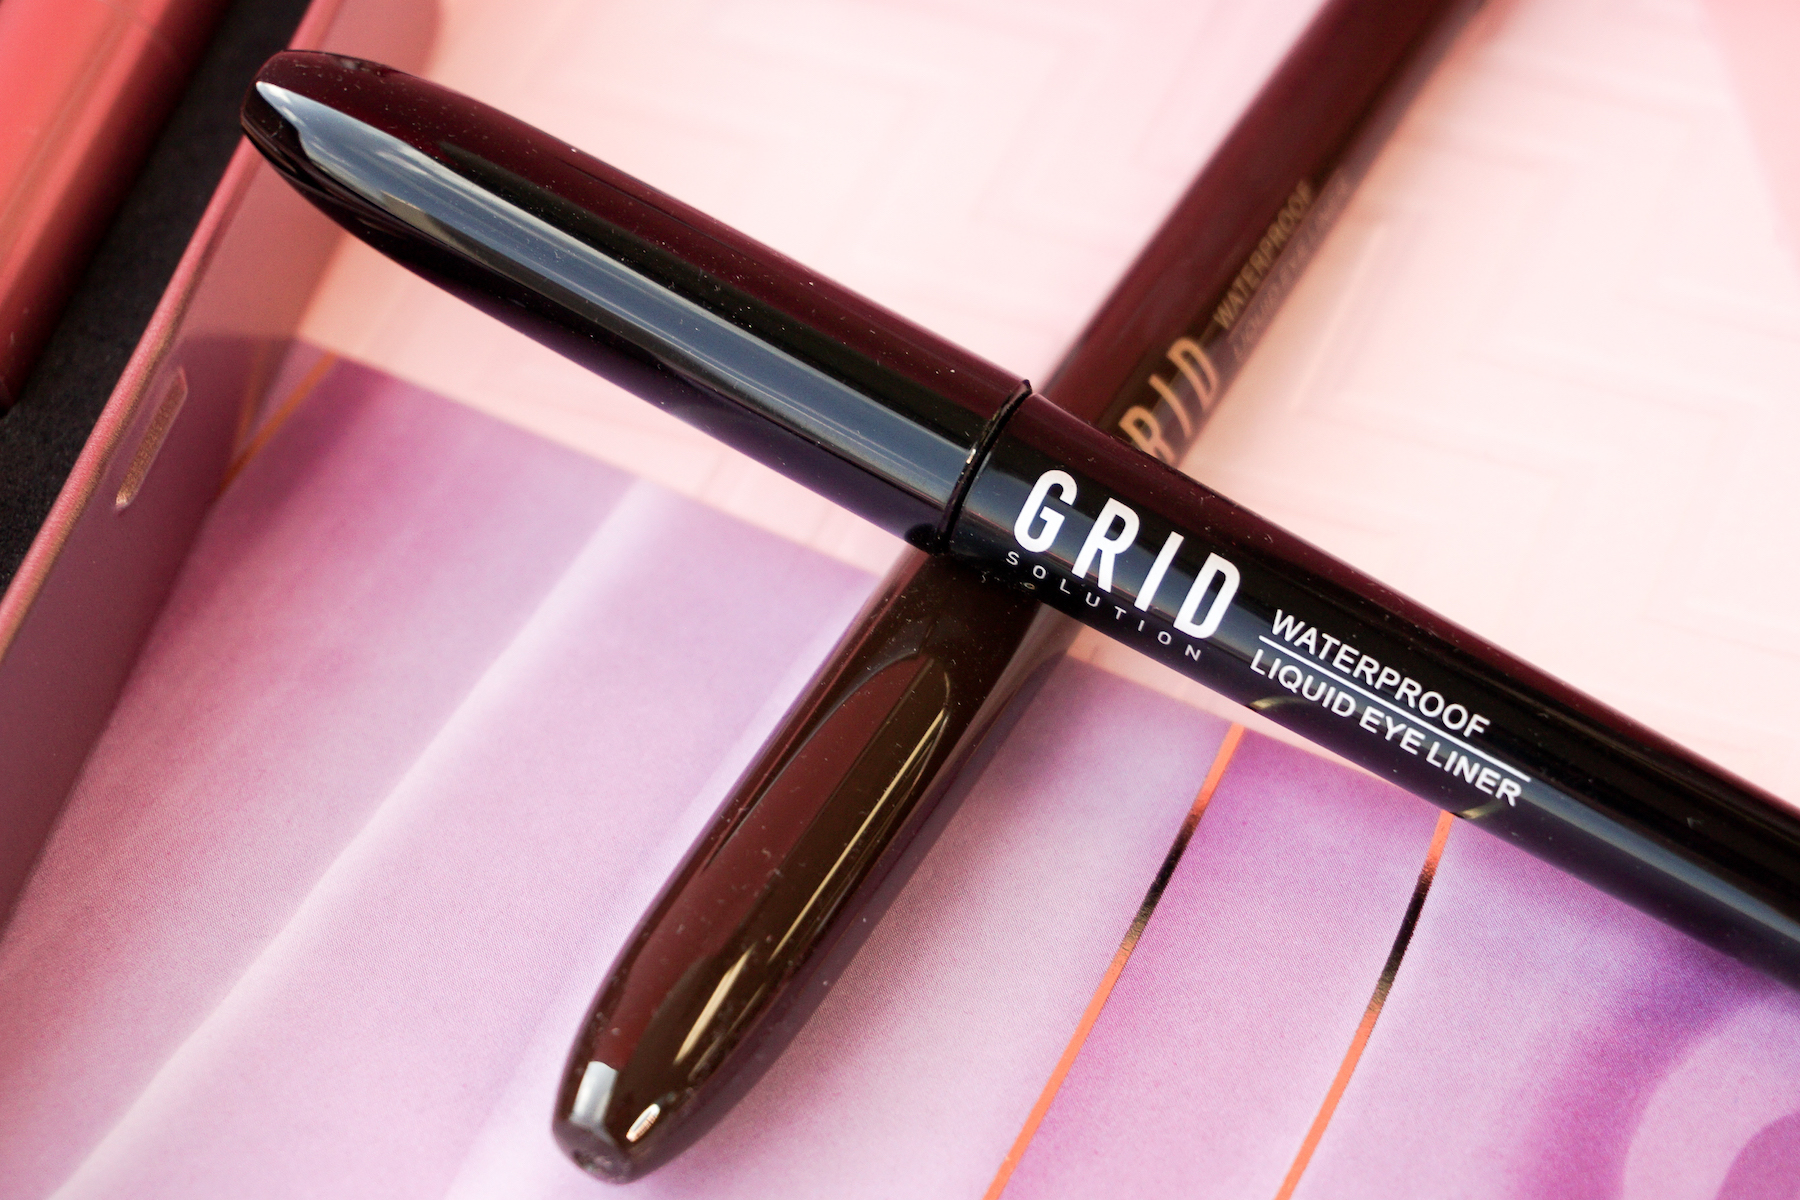 Let's Add This Must-Have Liner to My HG List: Grid Solution Liquid Eye Liner